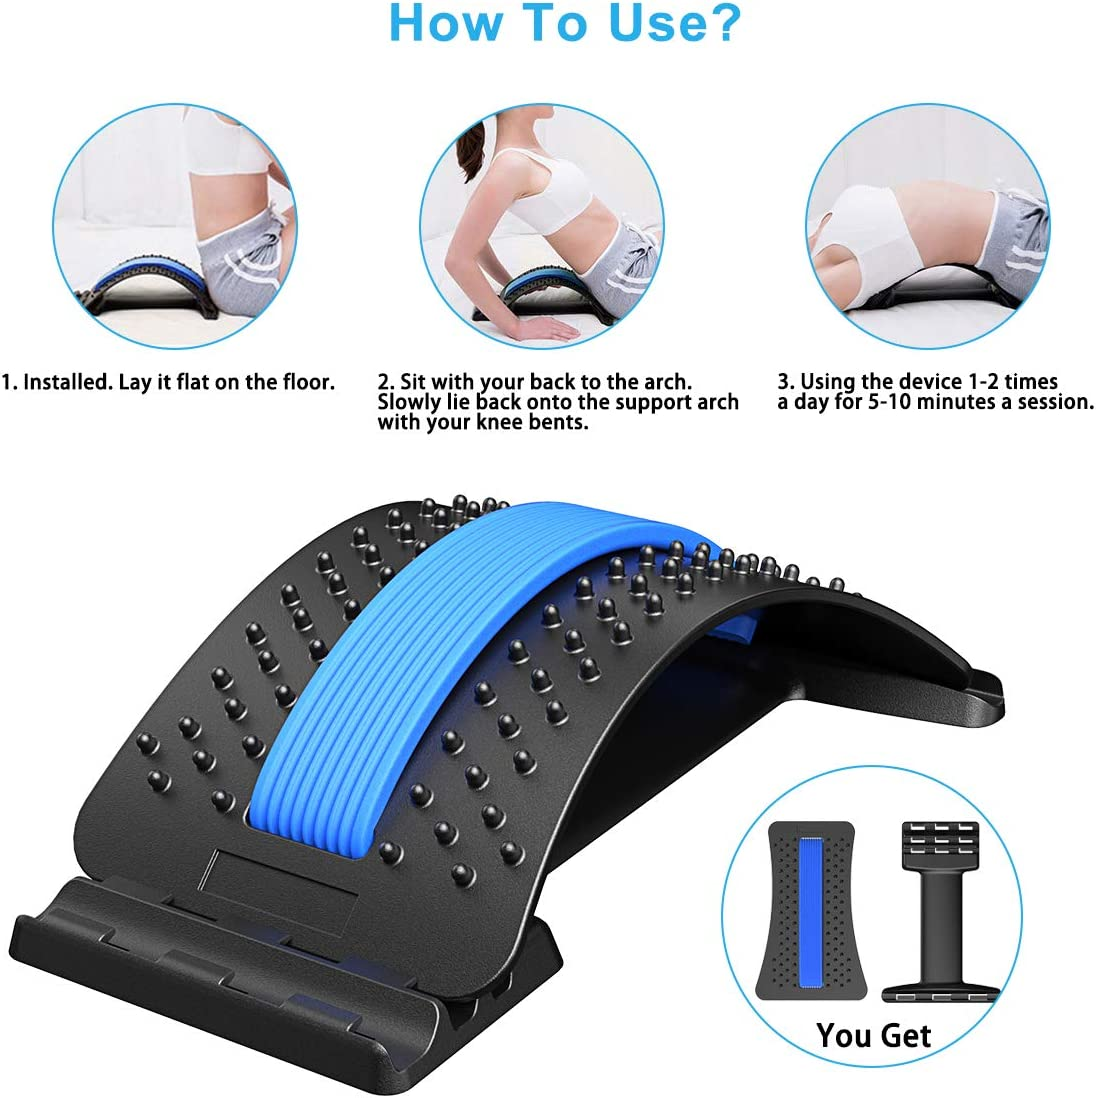 Bcway Back Stretcher, Multi-Level Lumbar Back Device for Upper and Lower Pain Relief,Herniated Disc,Sciatica, Scoliosis,Spine Deck on Bed Chair Car: Health & Personal Care